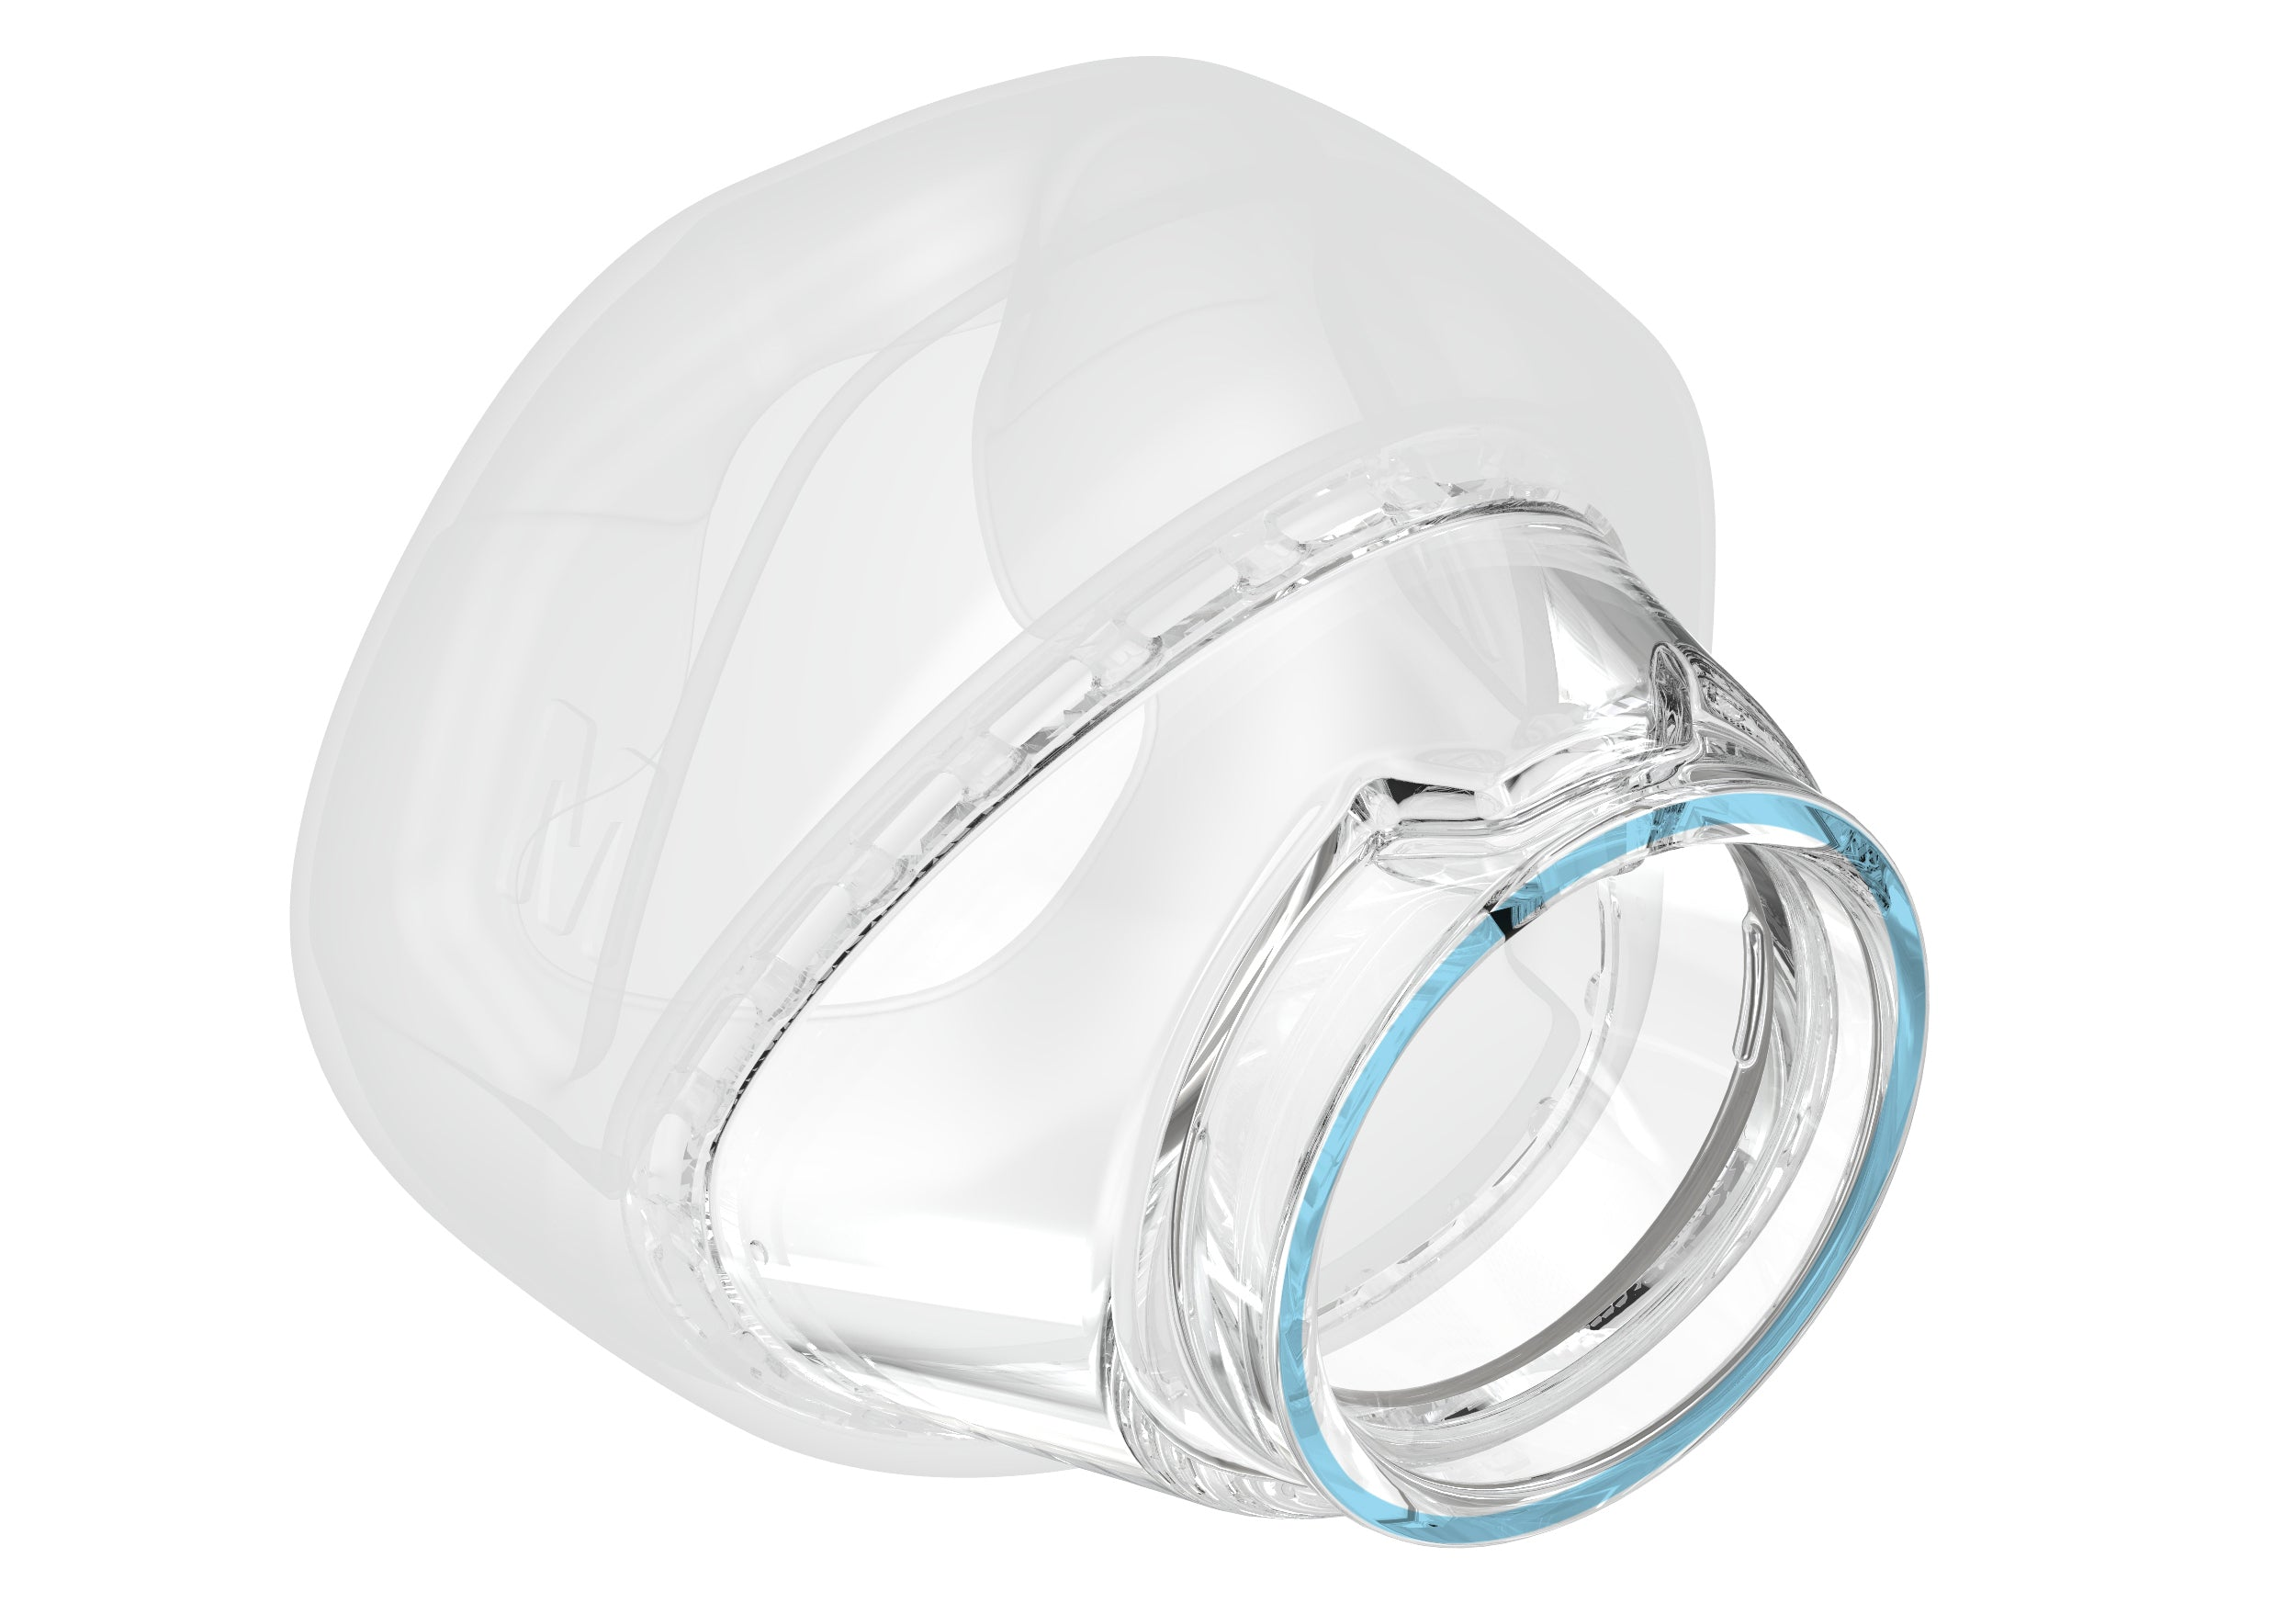 F&P Seal for Eson 2 Nasal Mask